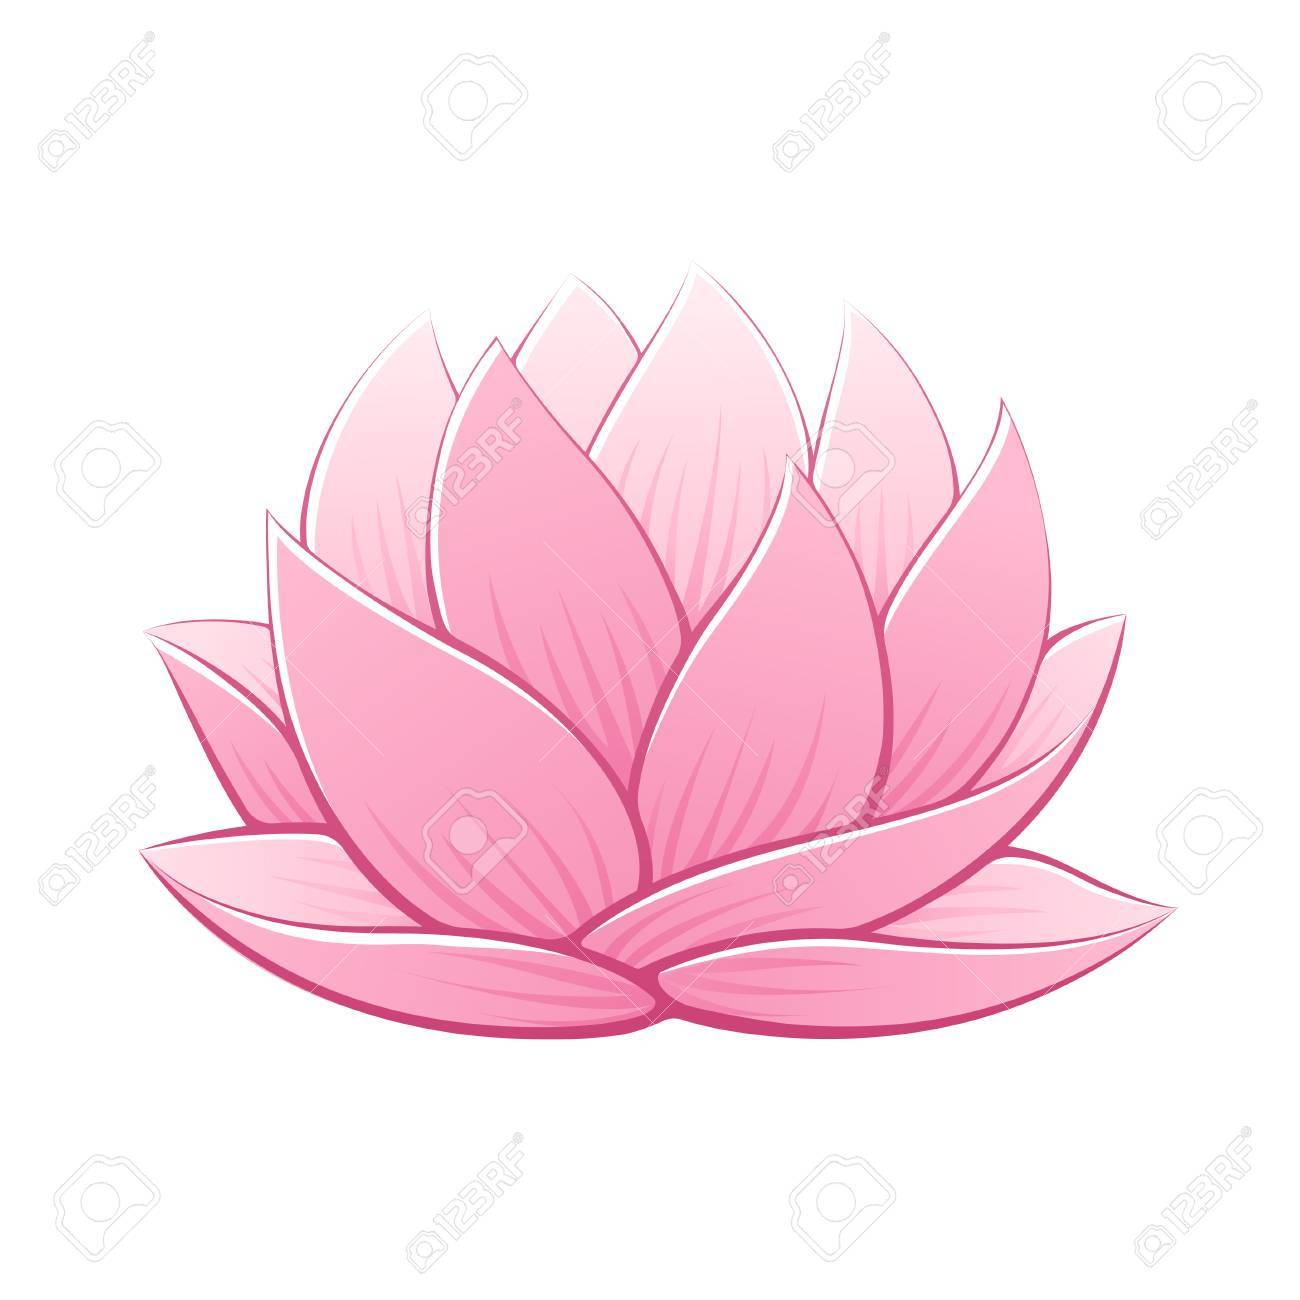 1300x1300 Pink Lotus Flower Vector Illustration. Beautiful Realistic